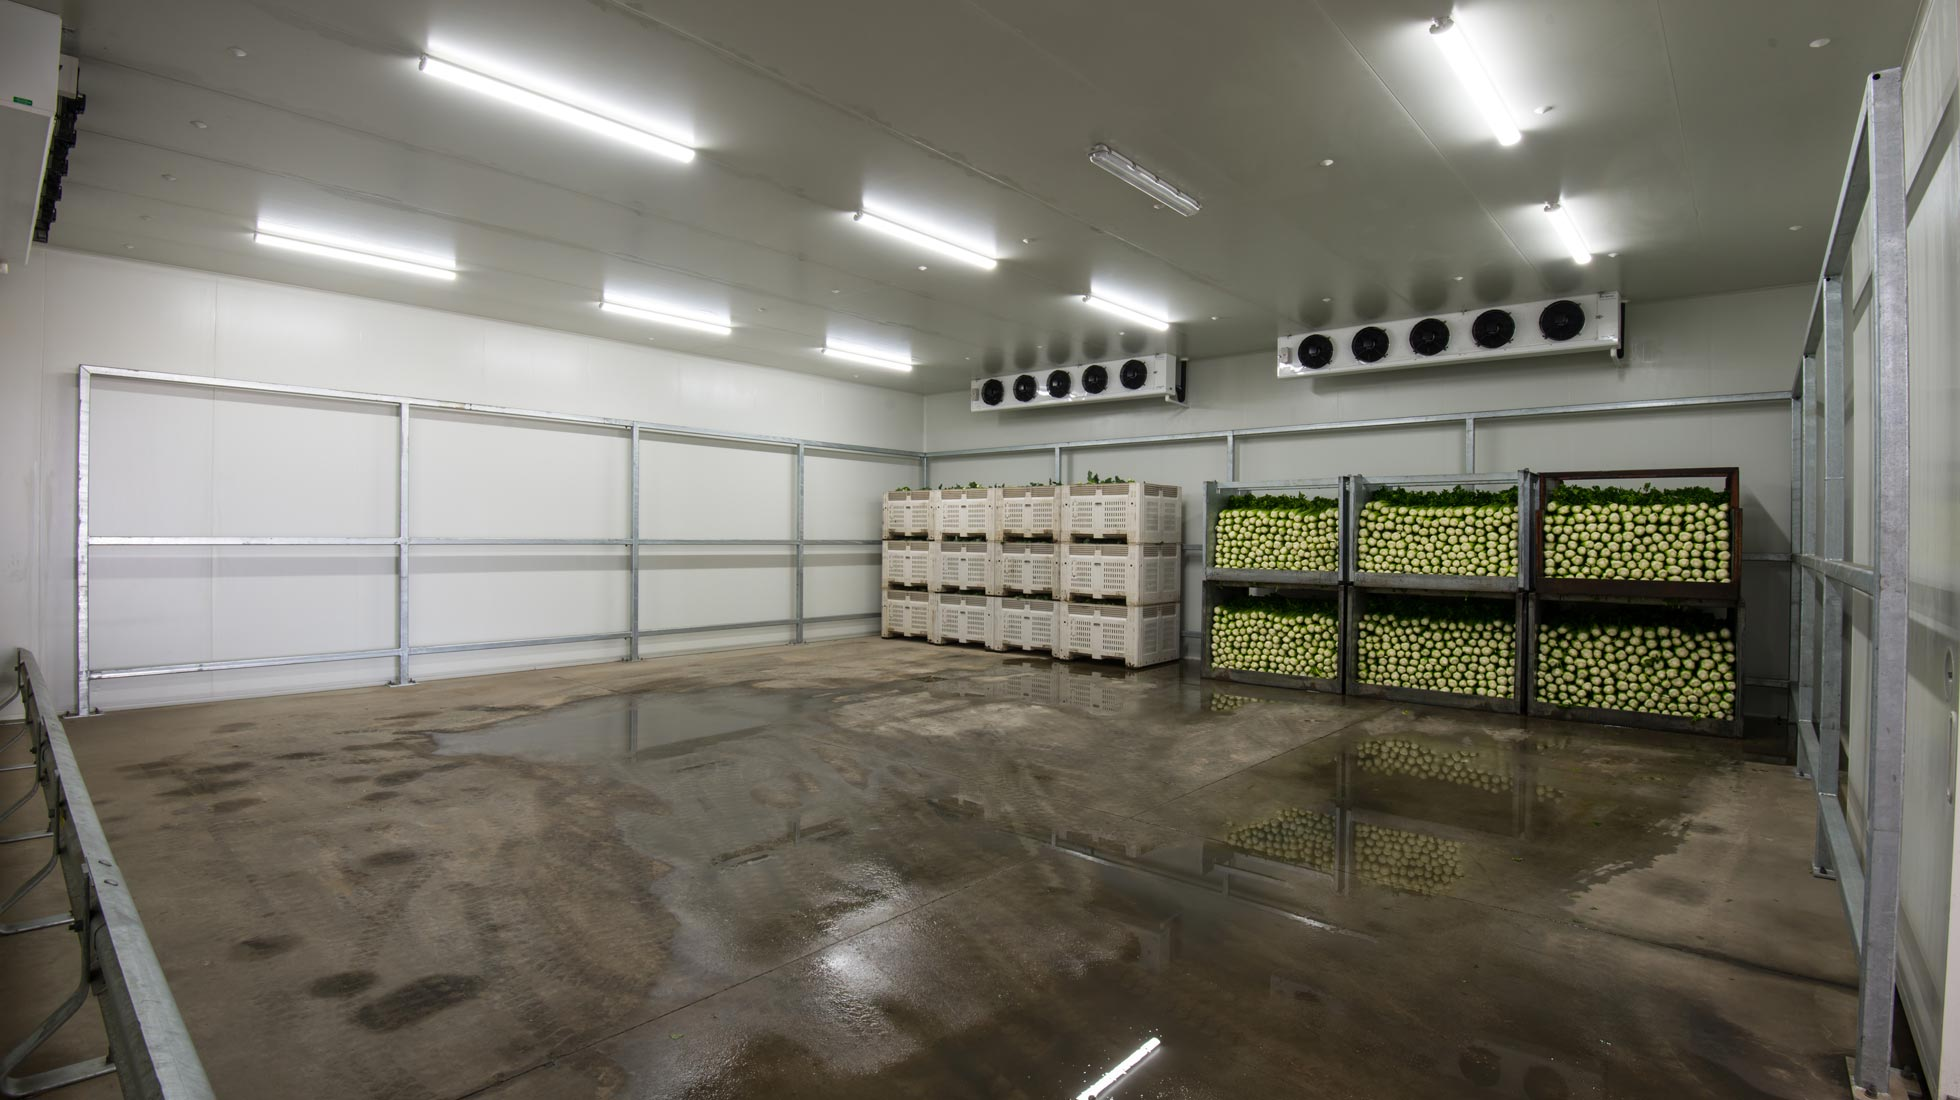 Cool rooms - FBJ Cool Rooms, Spray Booths and Maintenance